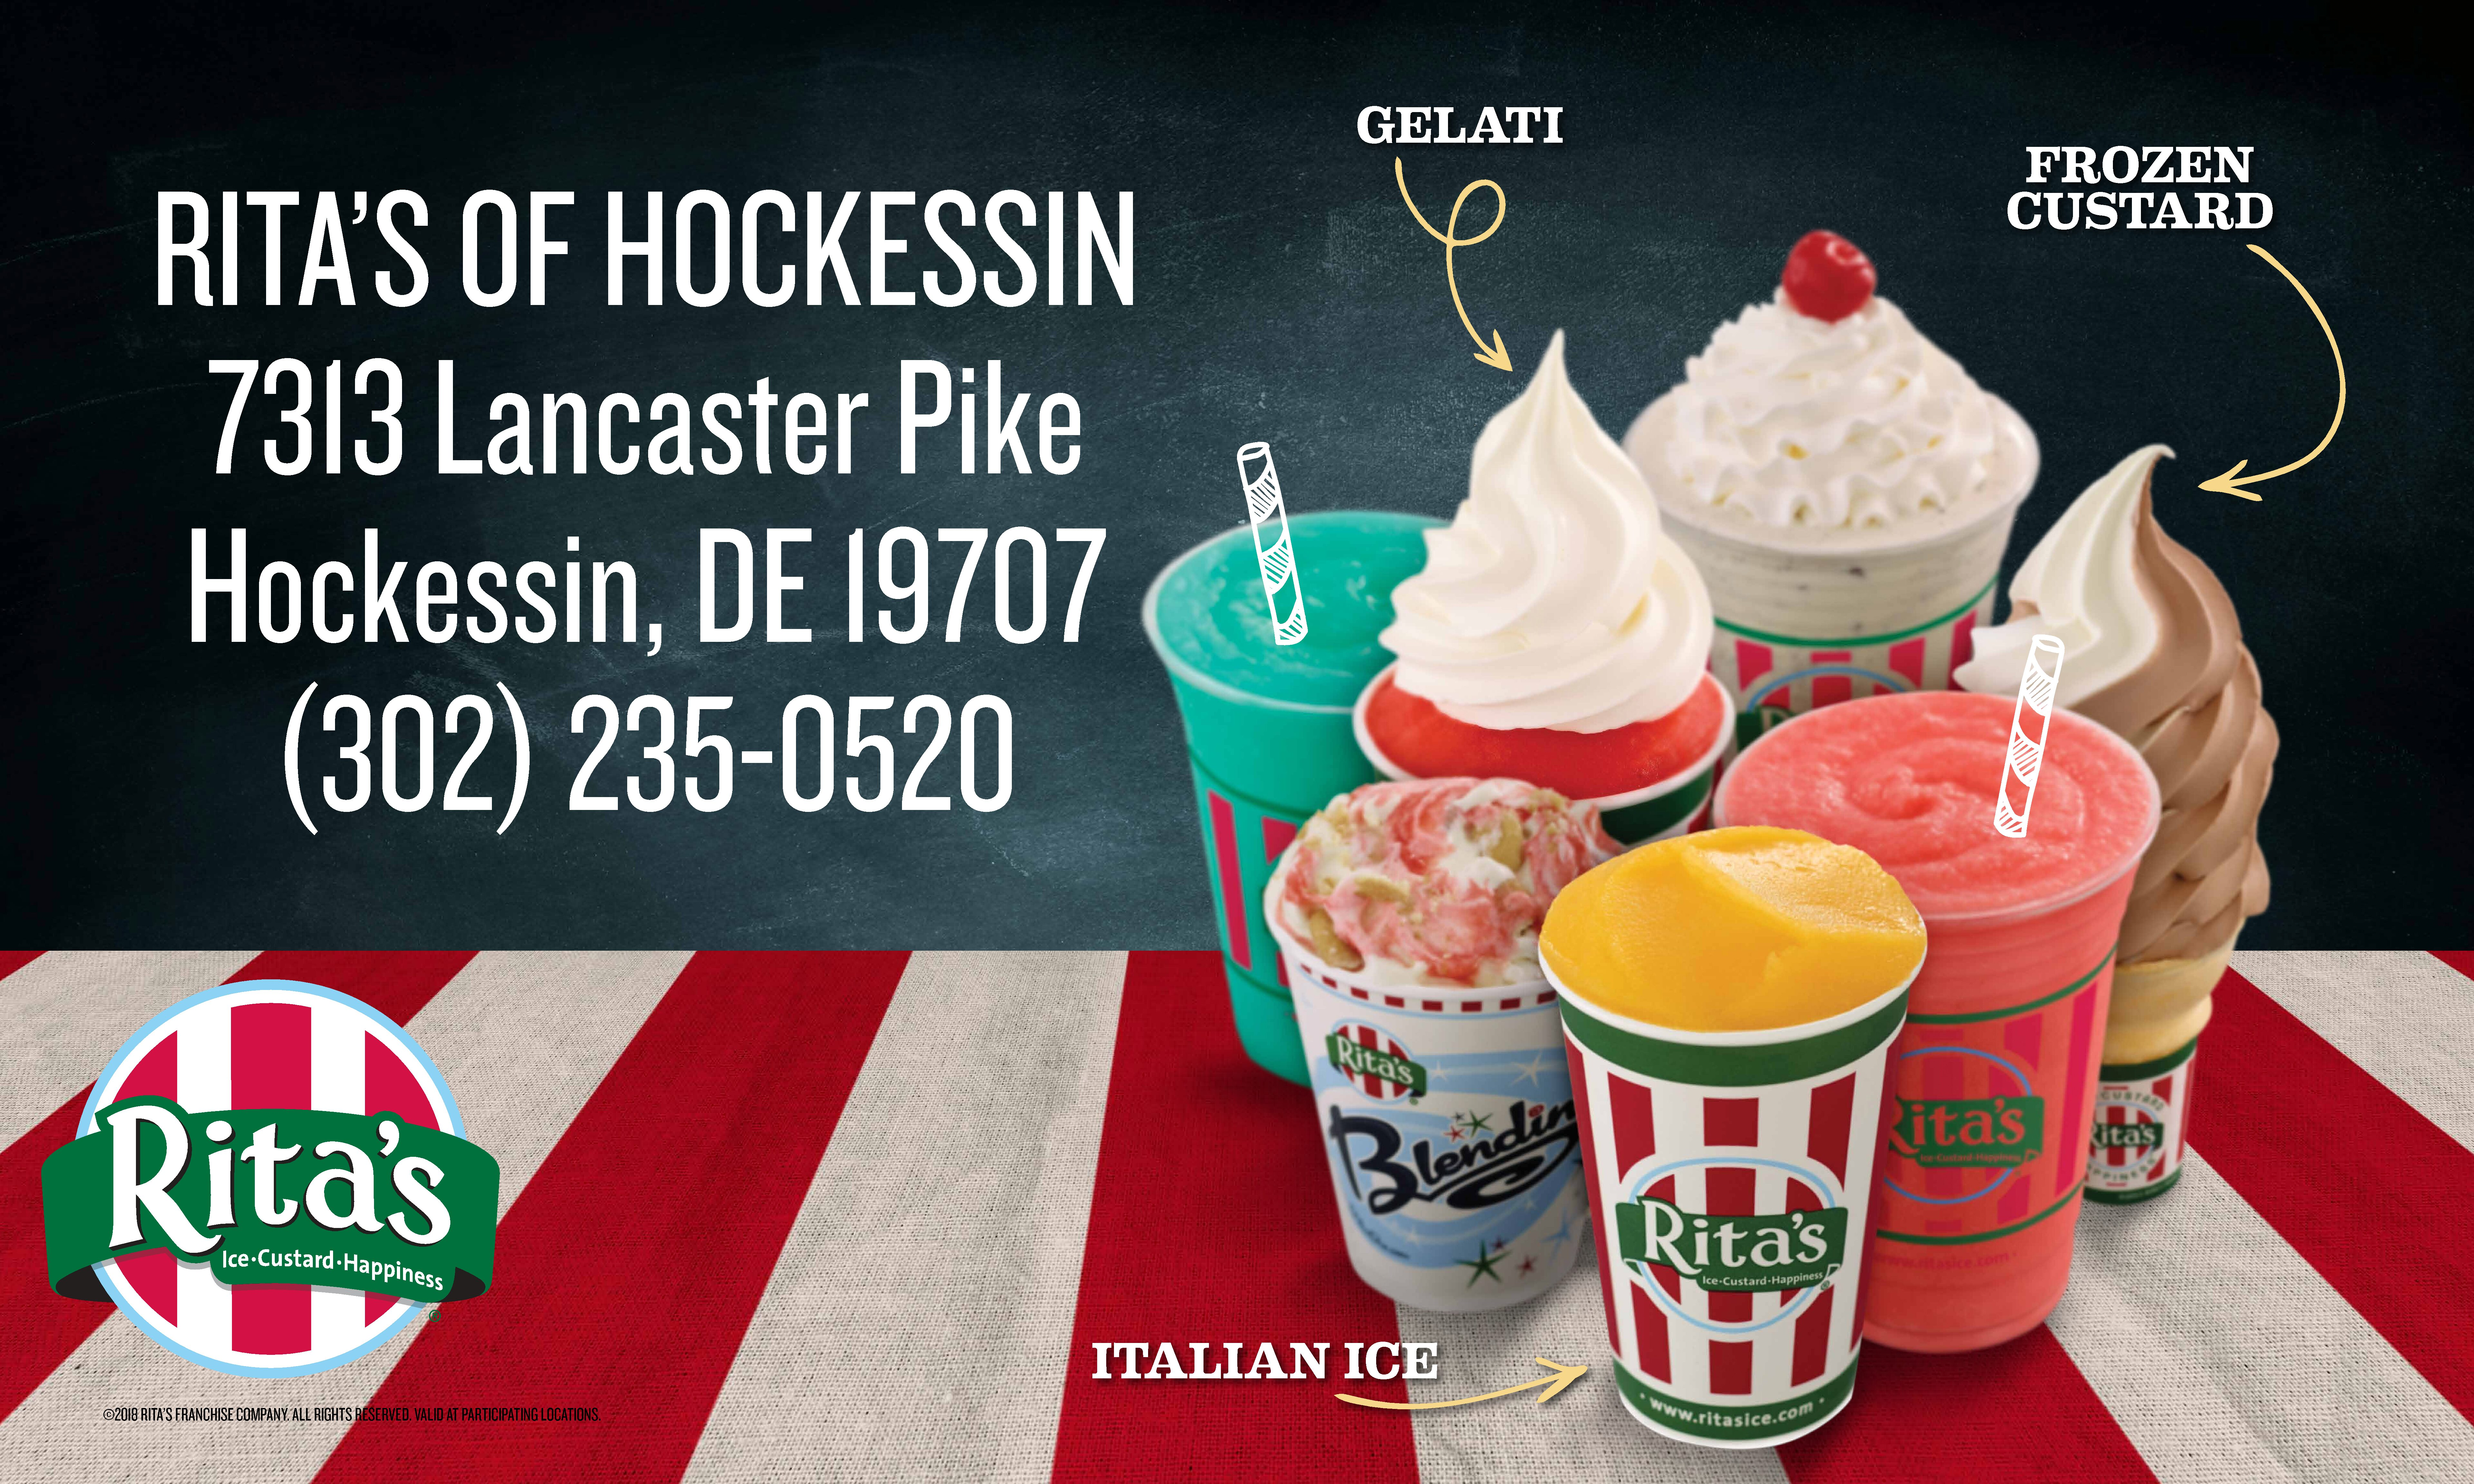 Delaware FC Hockessin is pleased to announce continued sponsorship relationship with Rita's of Hockessin! Thank you for your support of our program!!